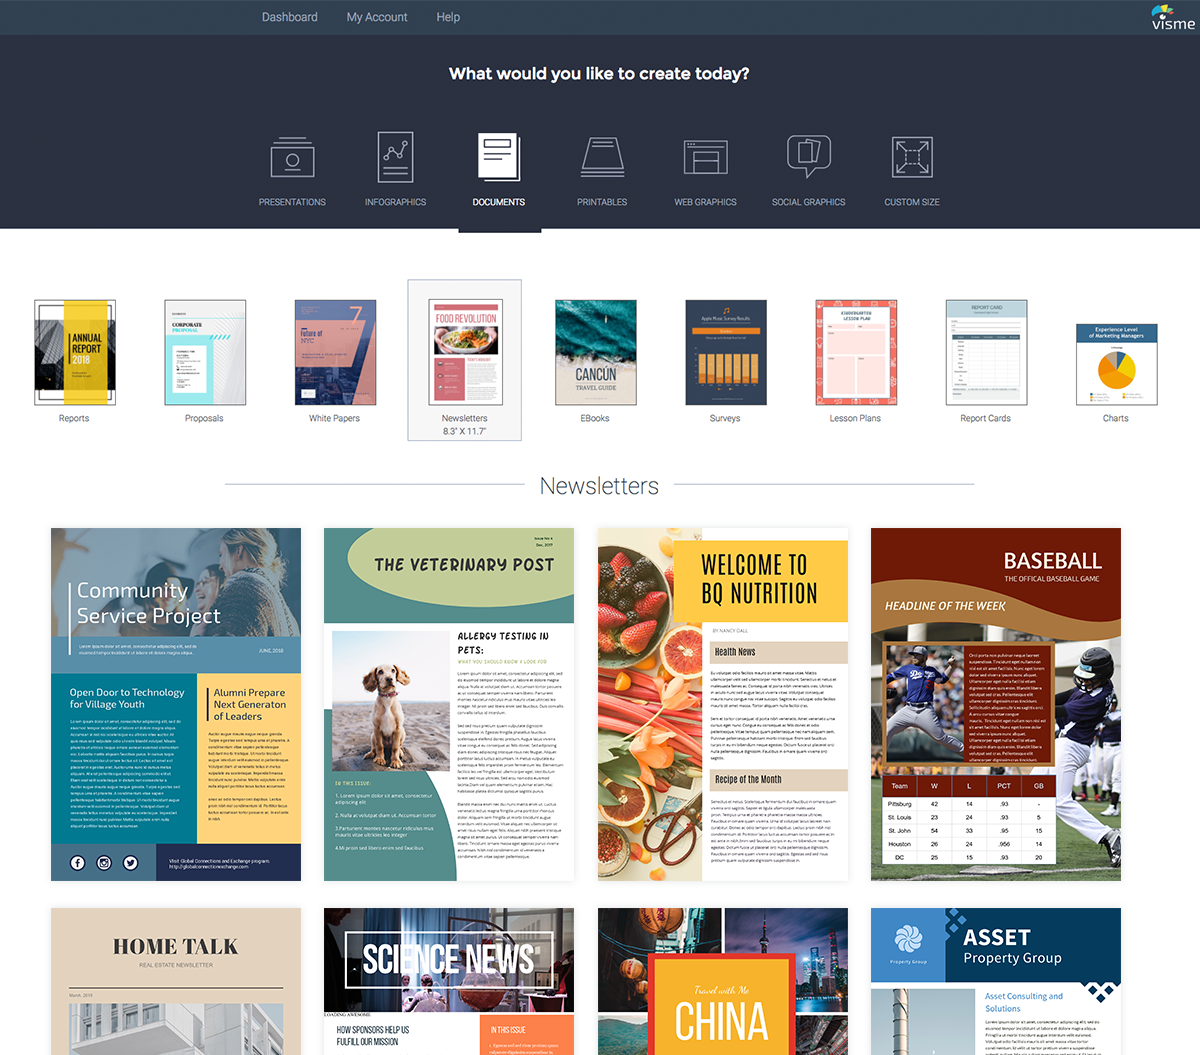 how to create a newsletter in visme